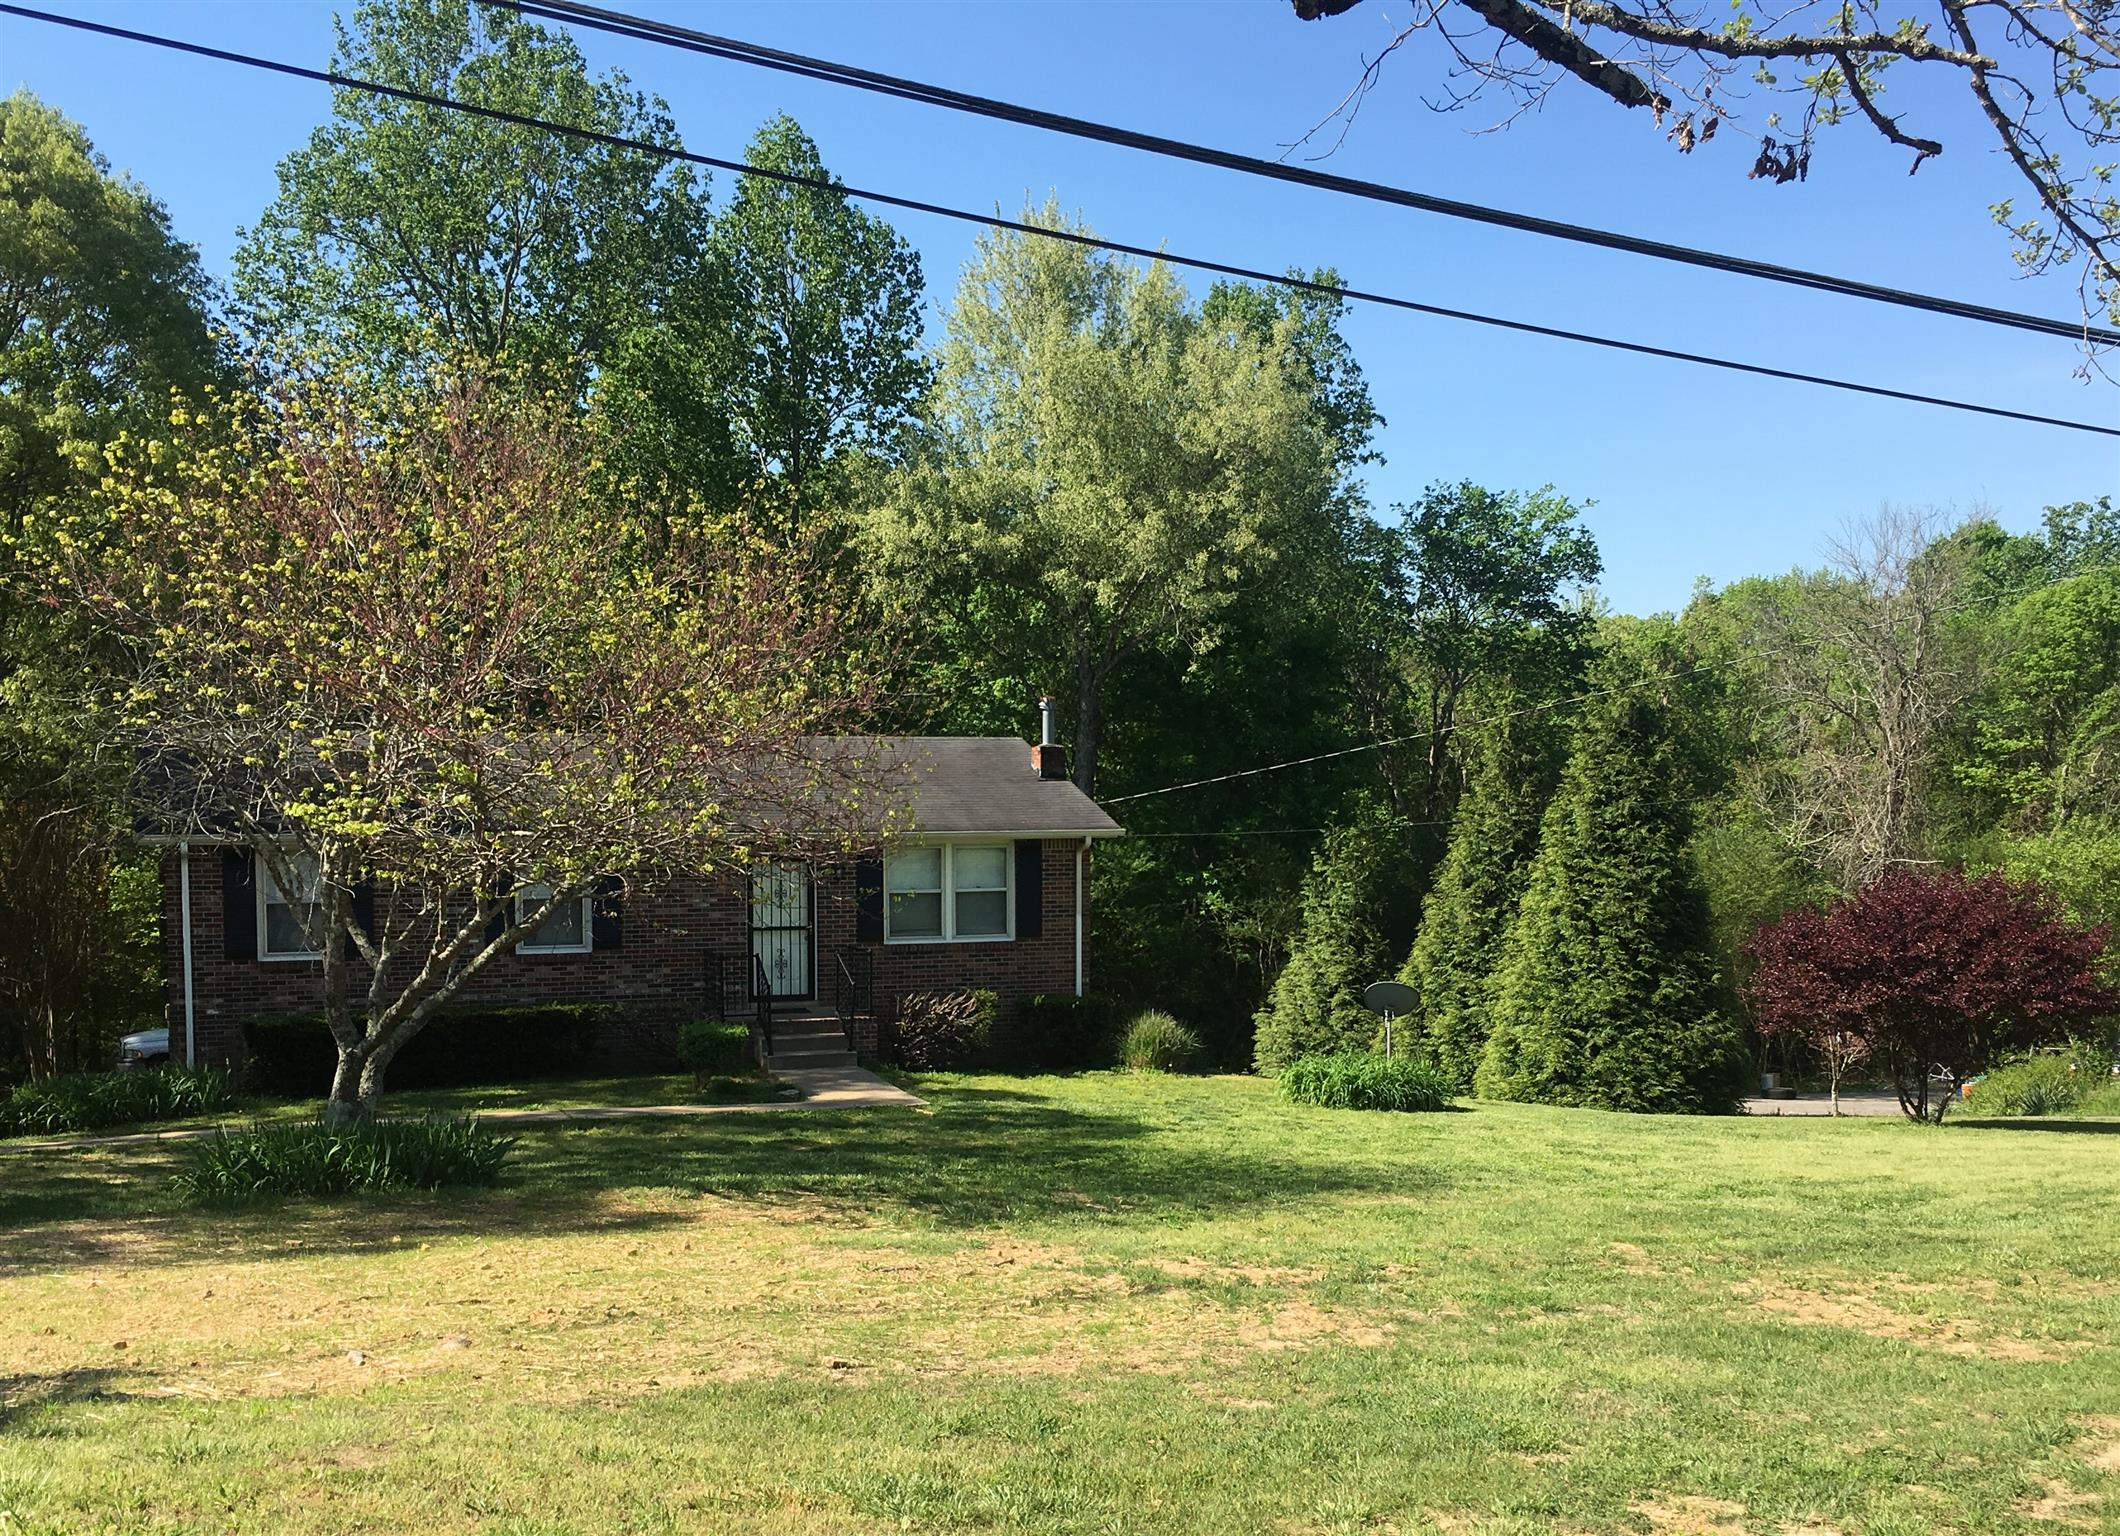 2883 Fairview Blvd, Fairview in Williamson County County, TN 37062 Home for Sale